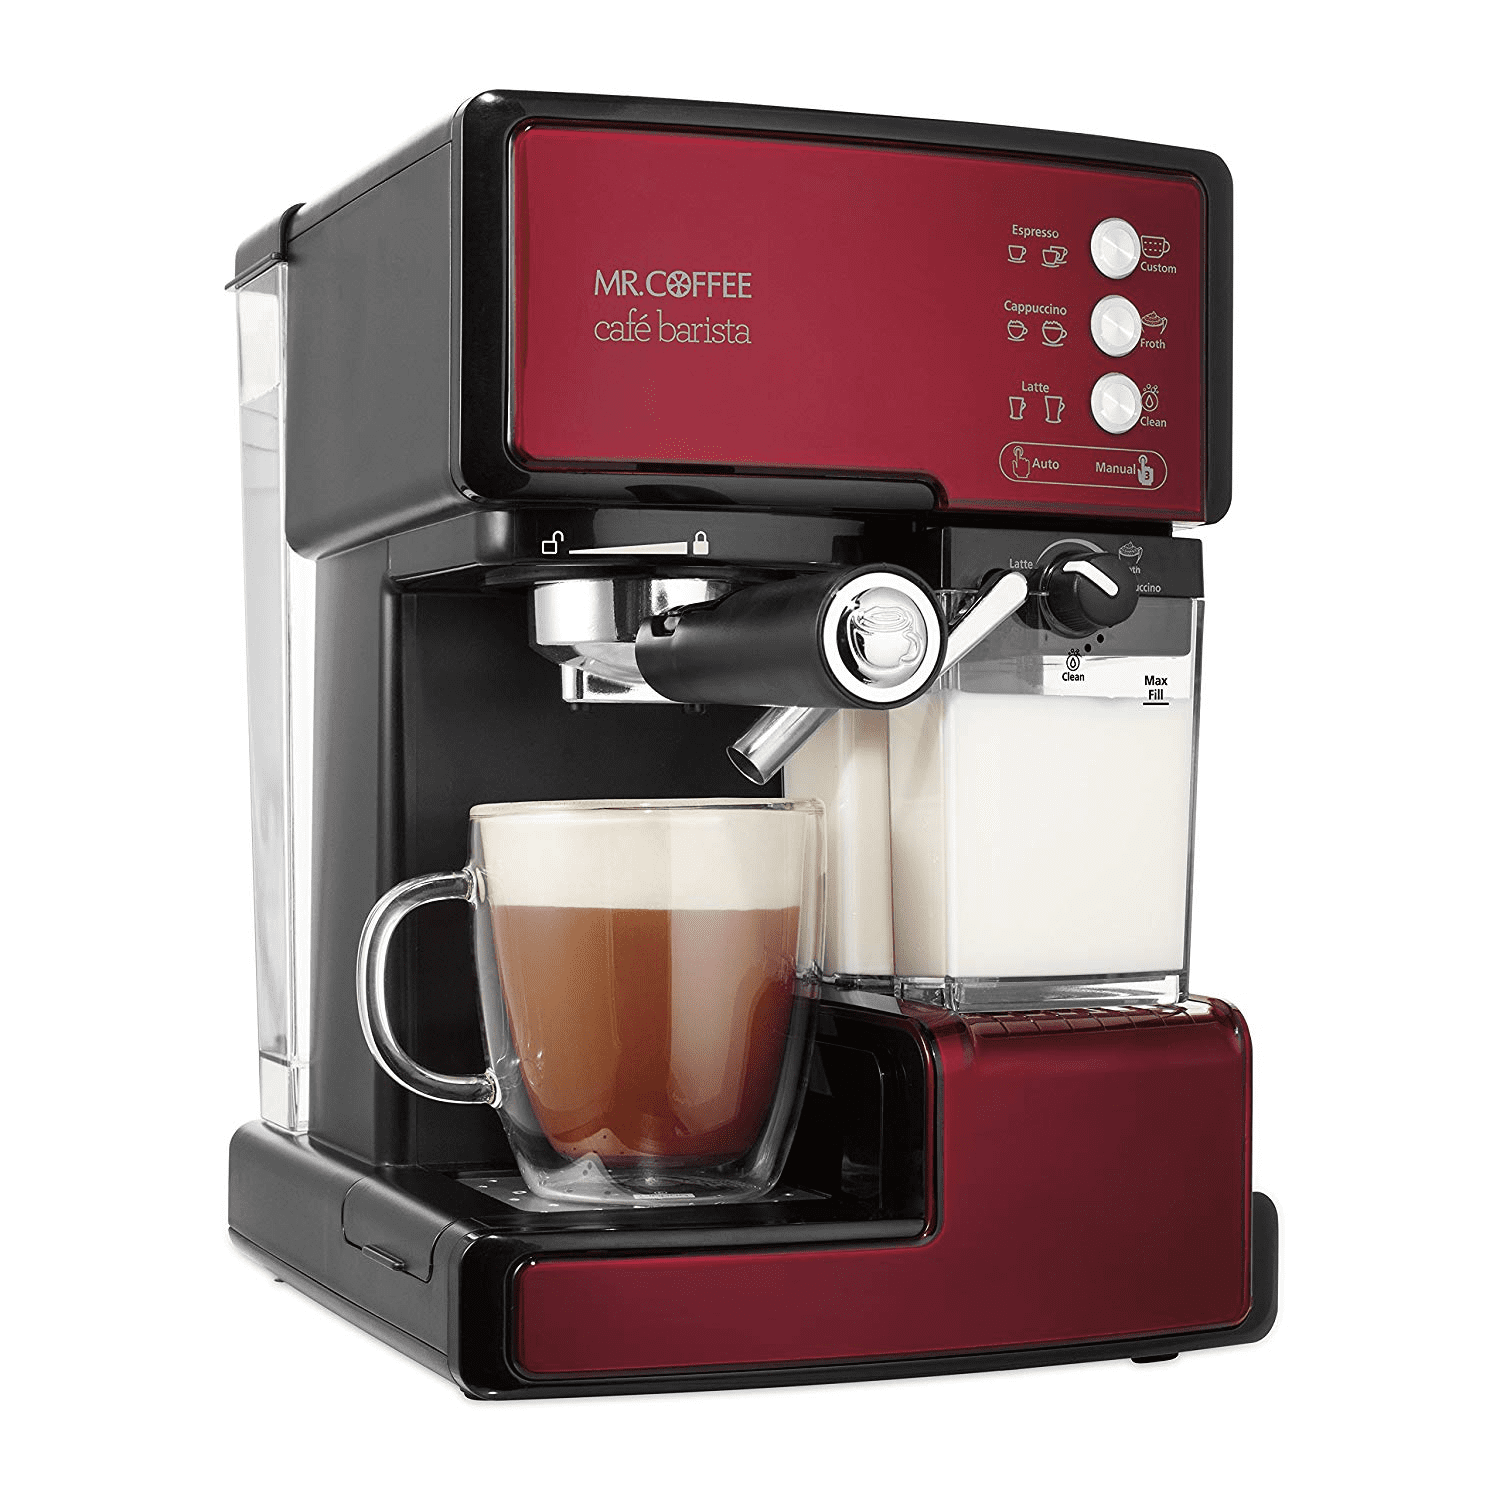 Mr Coffee Cafe Barista Espresso and Cappuccino Maker | Bean to Cup Coffee Machine